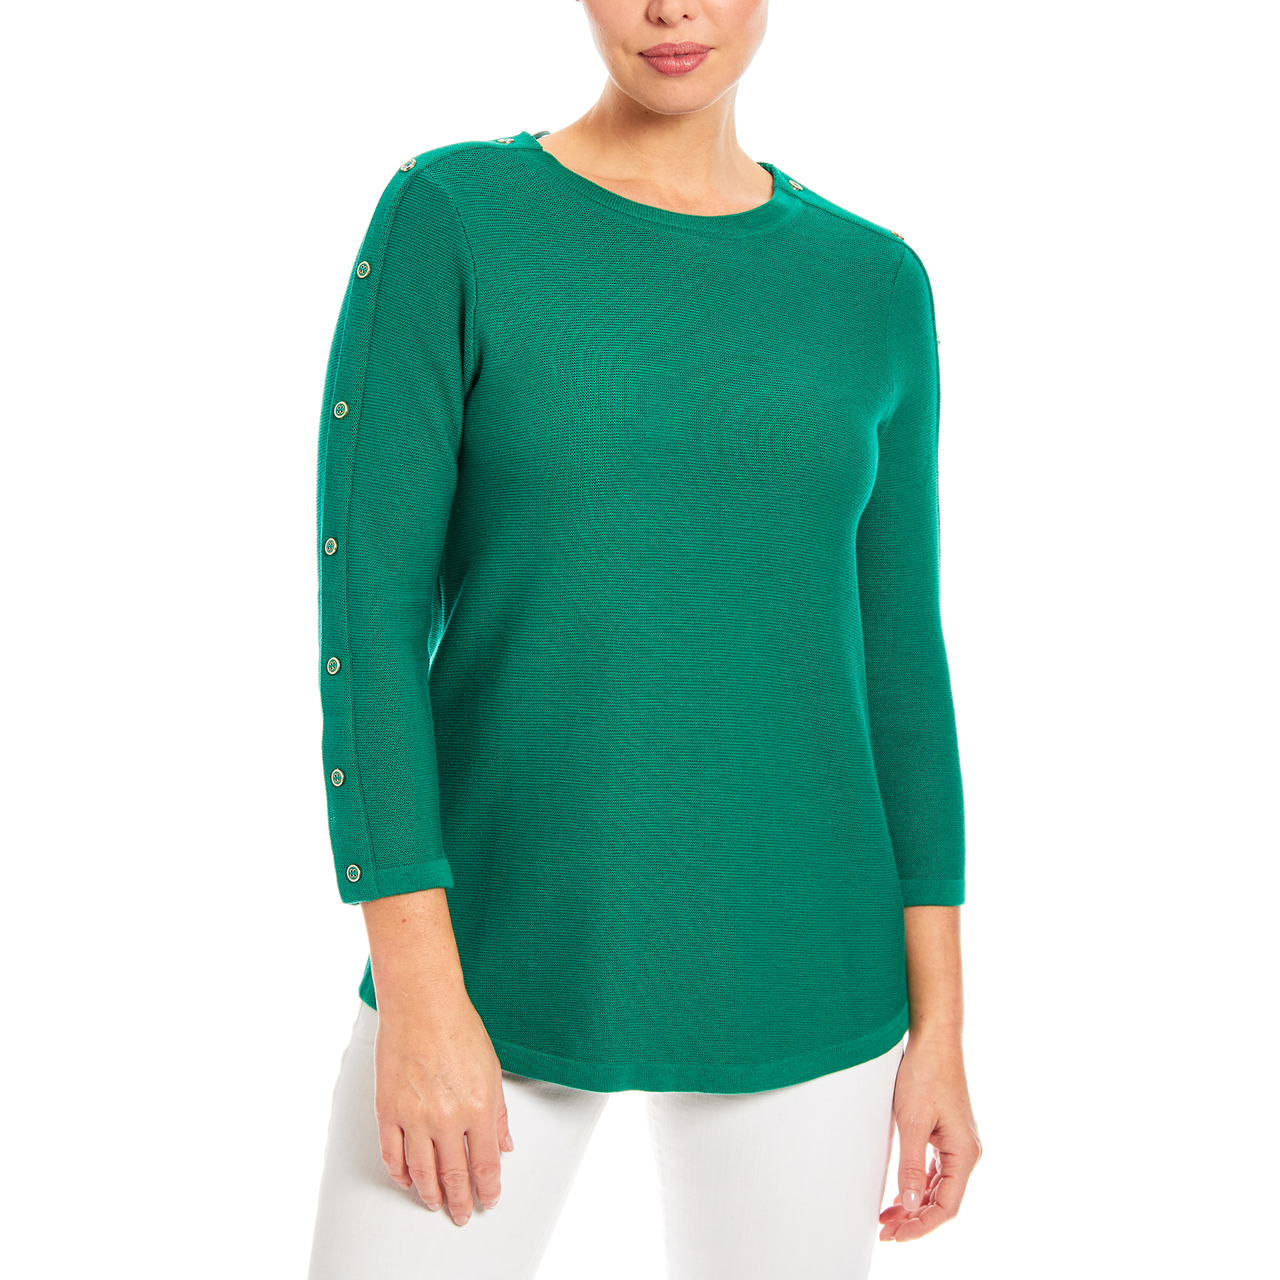 3/4 Sleeve Novelty Button Sleeve Crew Neck Textured Sweater in Kelly Green